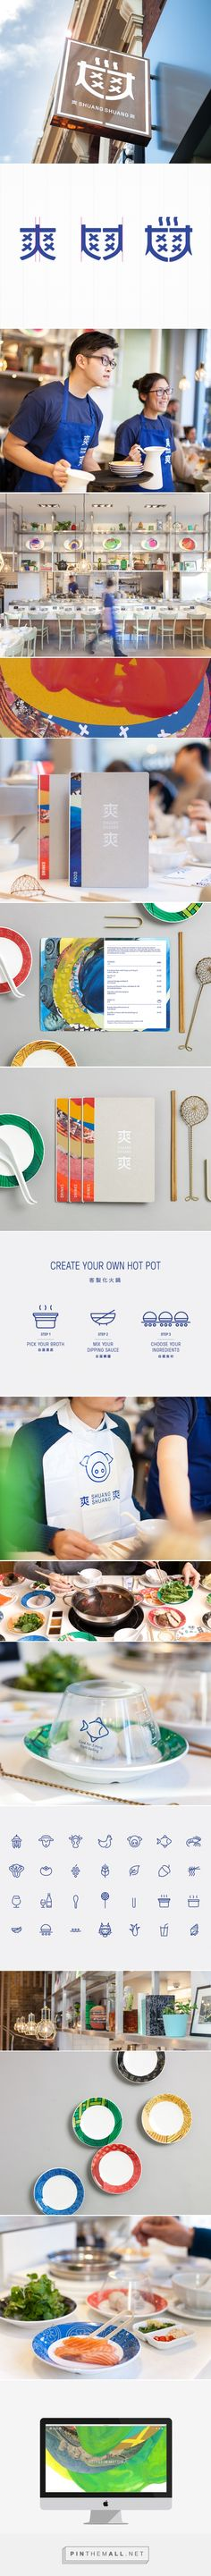 Shuang Shuang by ico Design 74 best